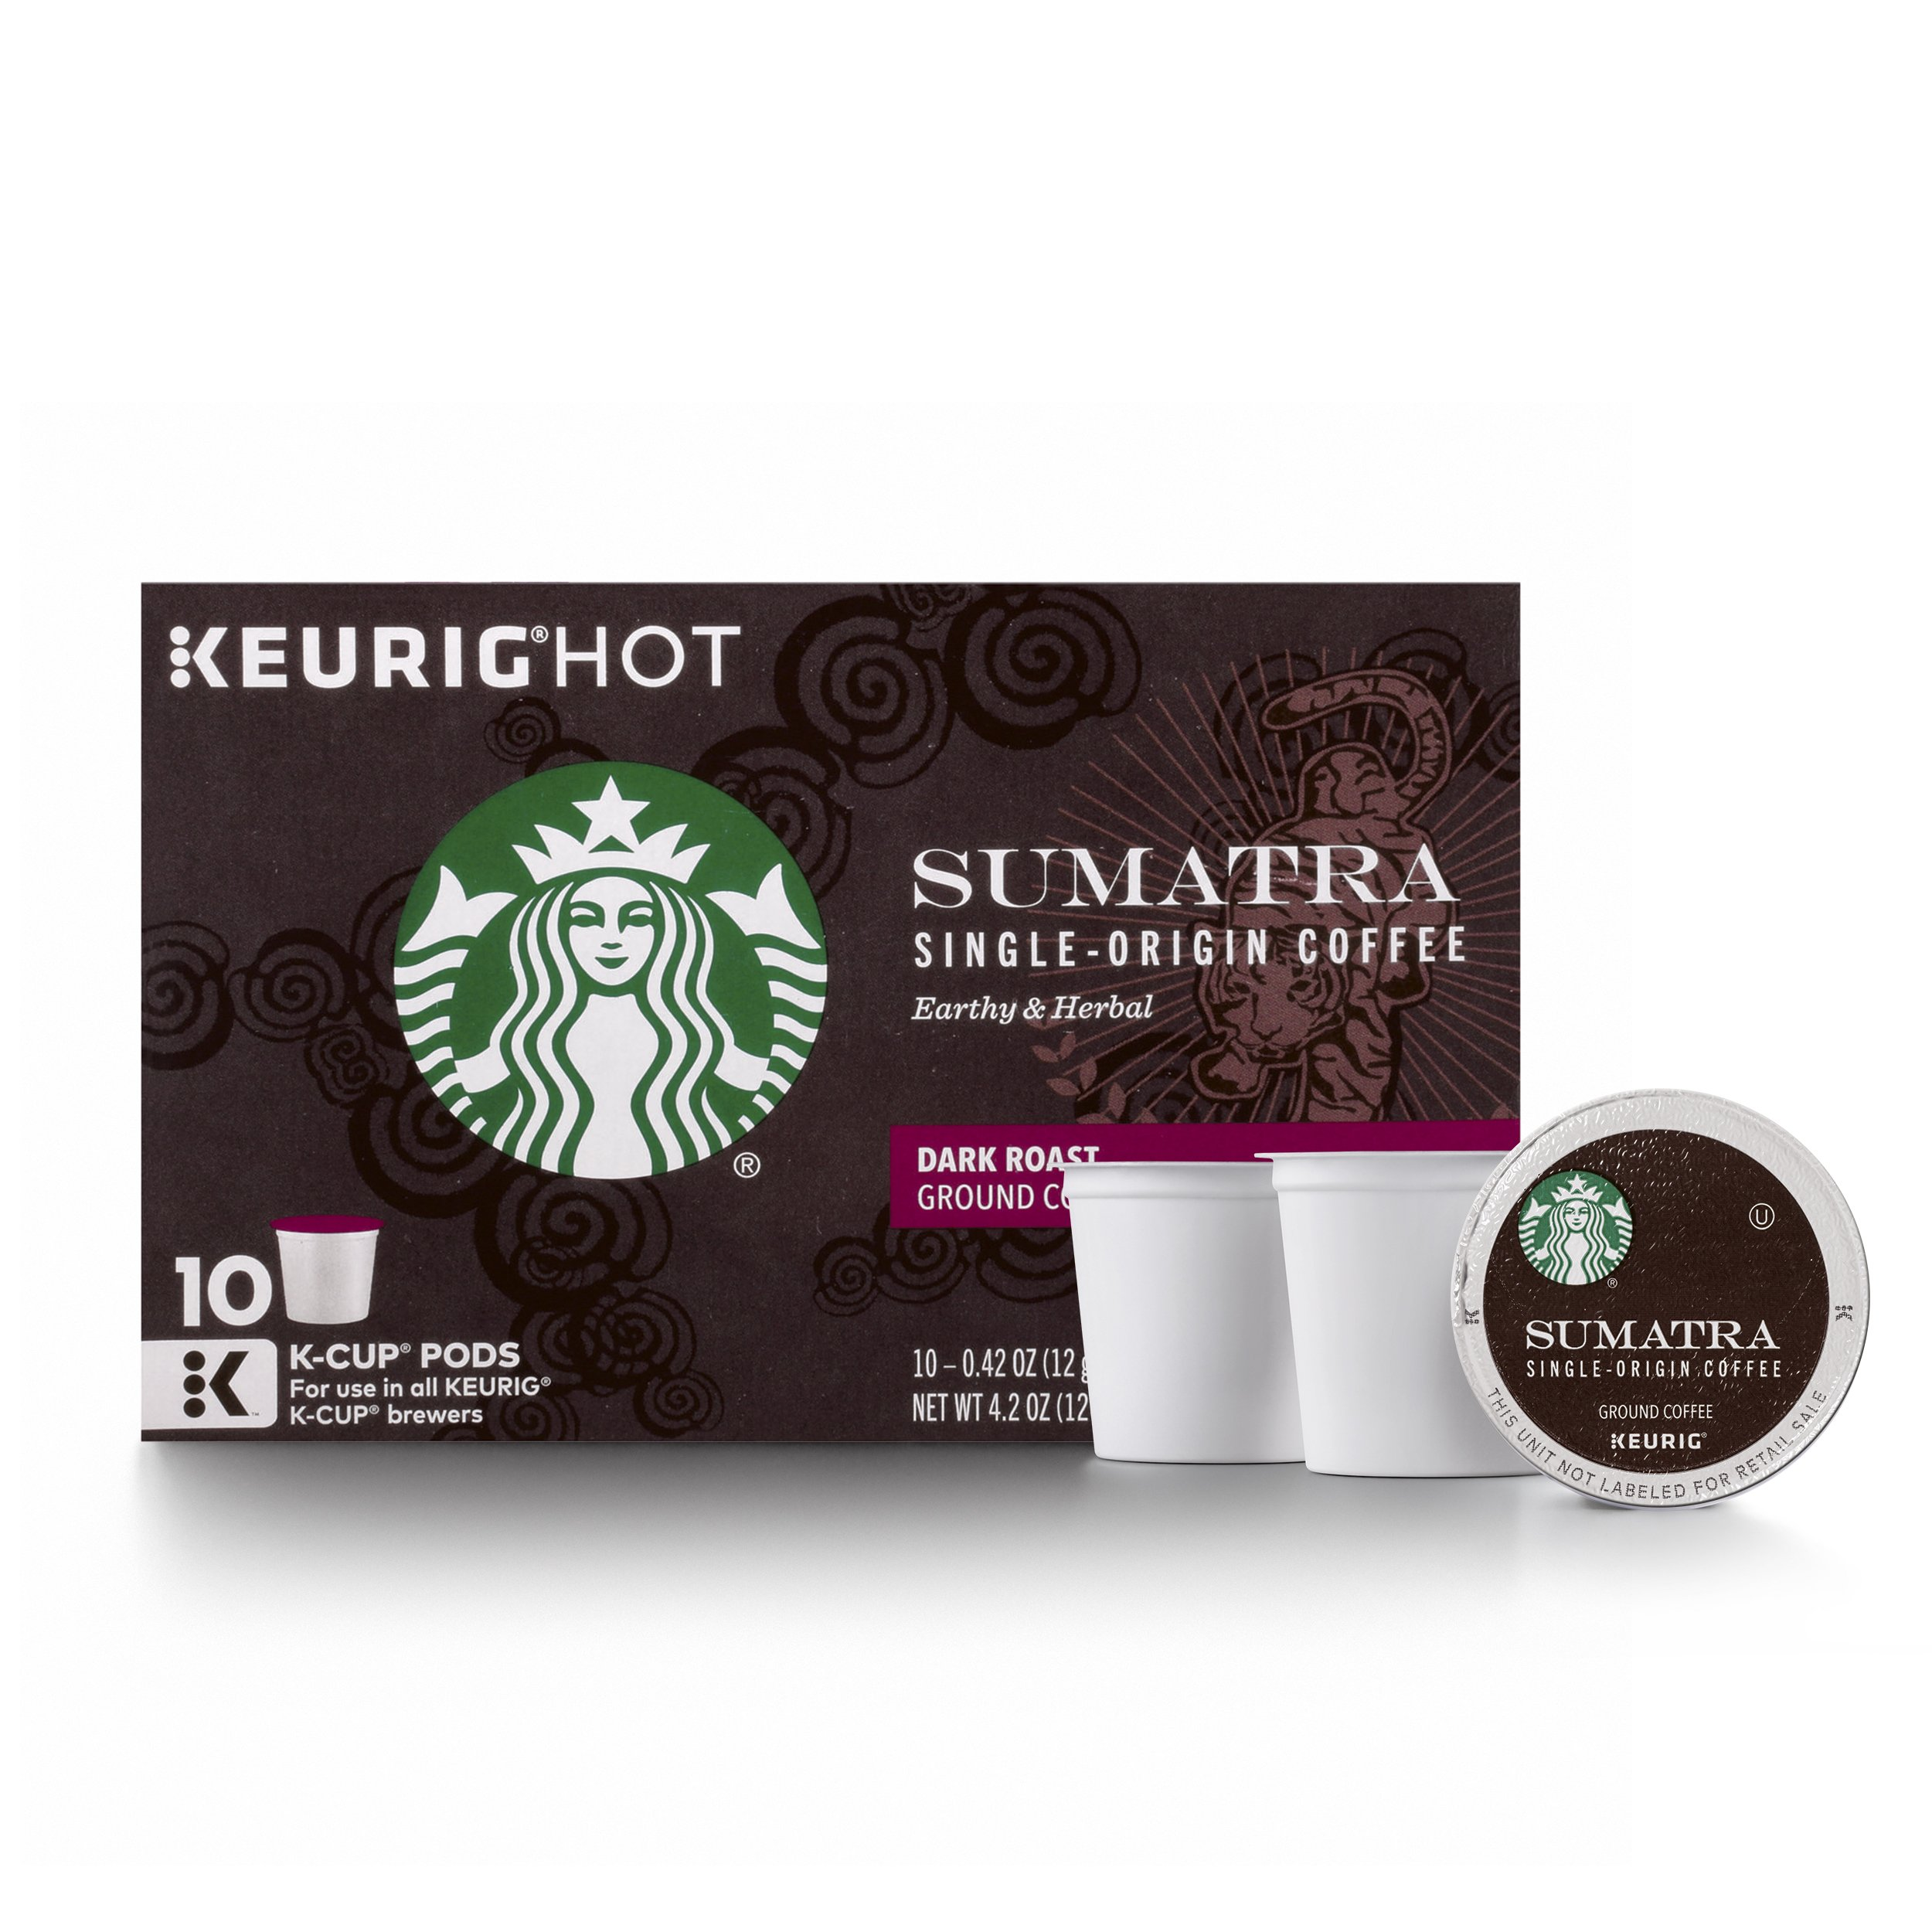 Starbucks Sumatra Dark Roast Single Cup Coffee for Keurig Brewers, 6 Boxes of 10 (60 Total K-Cup pods) (Pack of 6)